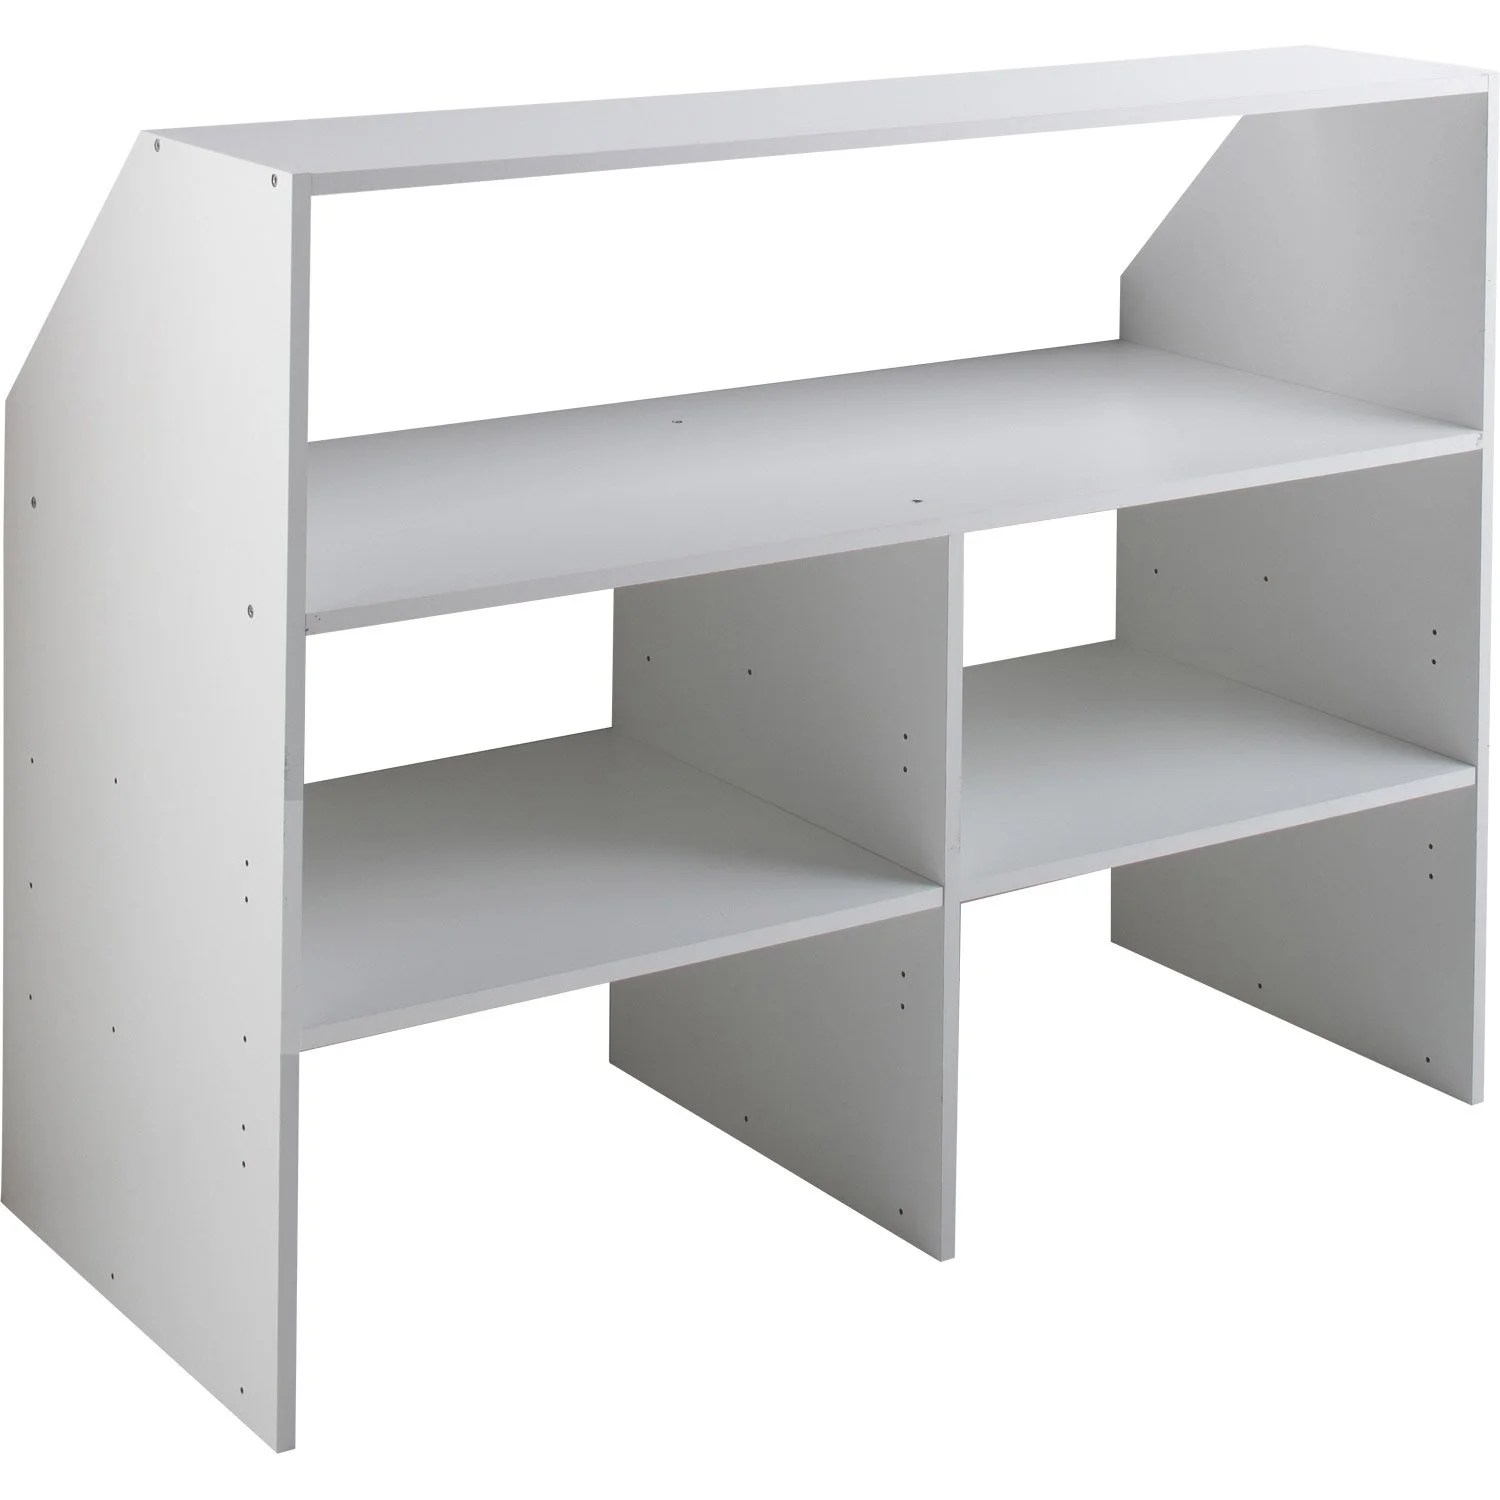 Support Etagere Verre Leroy Merlin Support Etagere Verre Leroy Merlin Finest Great Etagere Metal